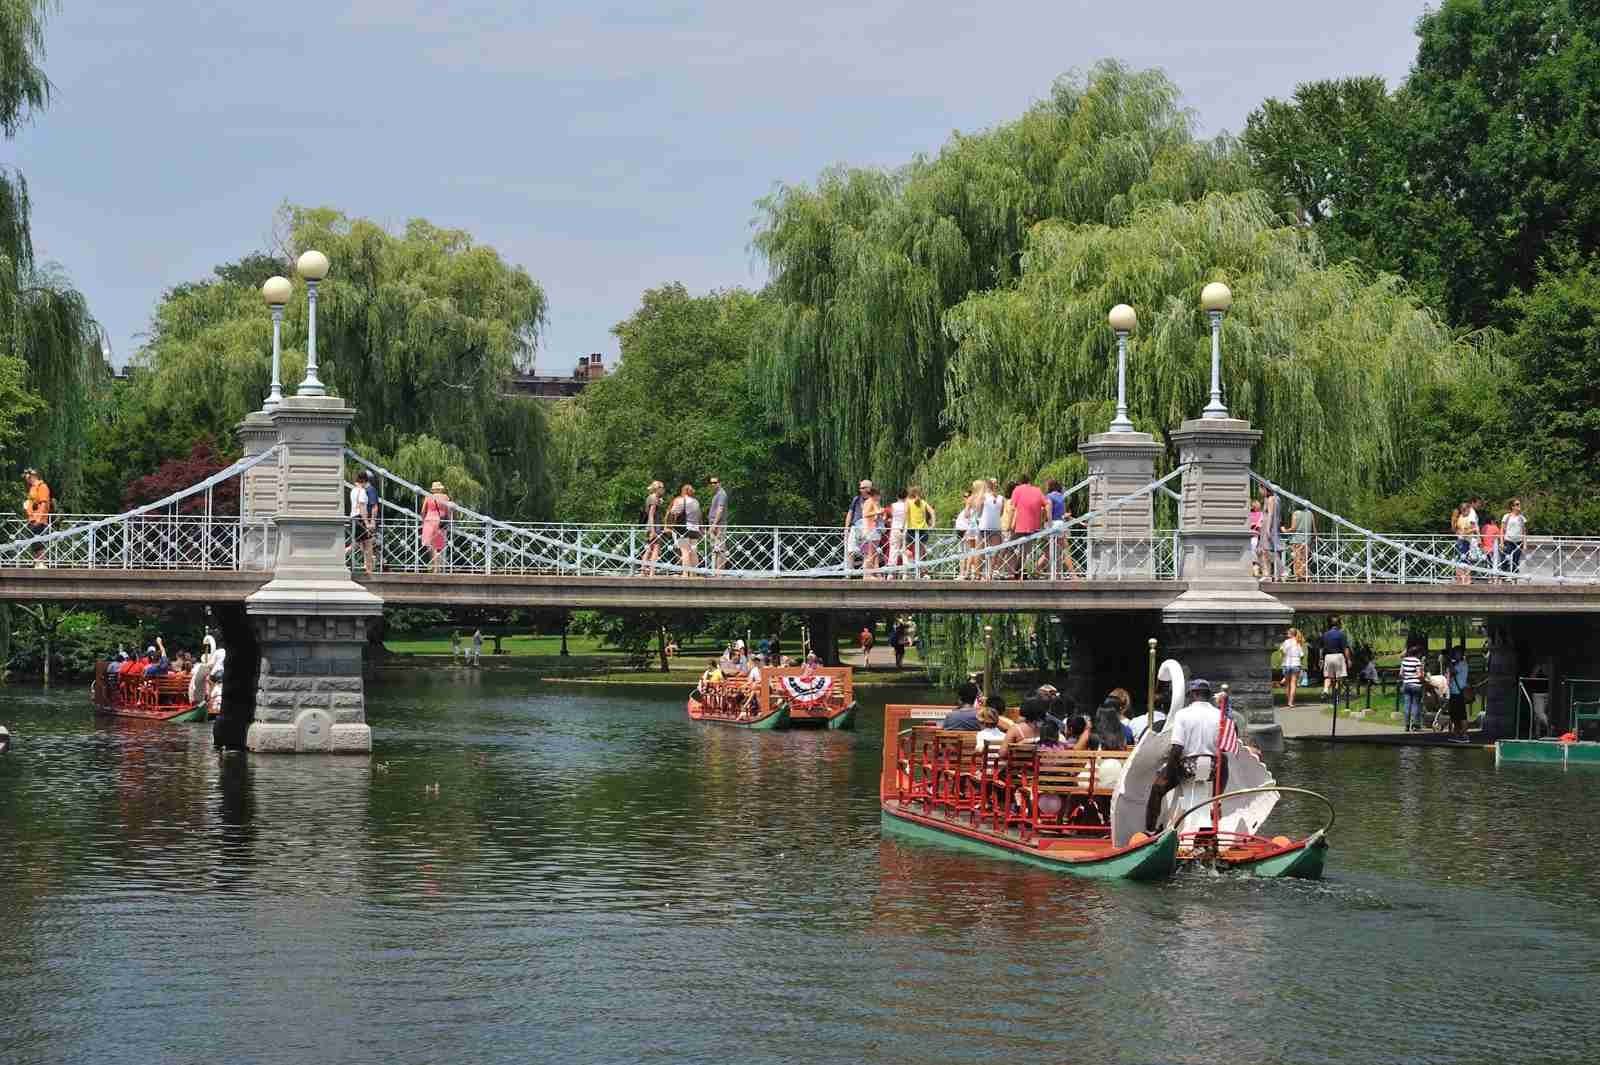 The Swan Boat Ride at Boston Common. (Photo by aimintang / Getty Images)